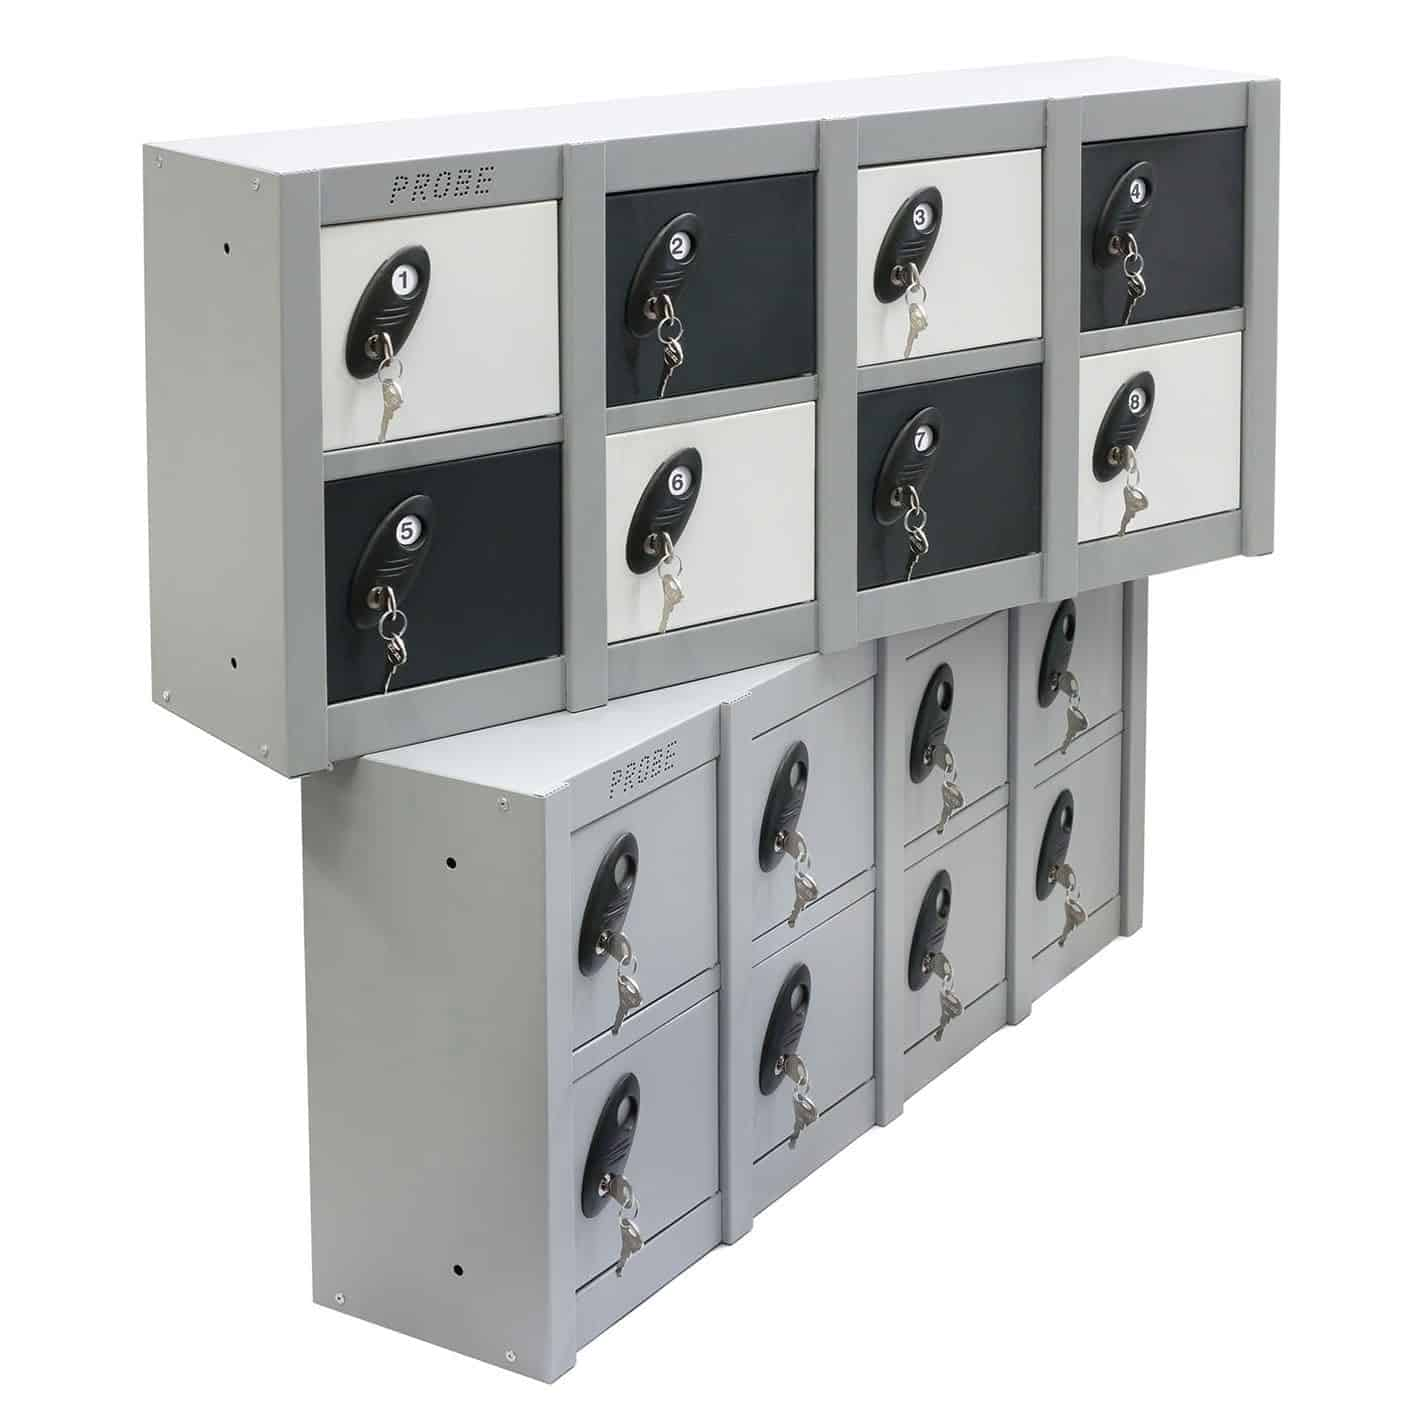 Minibox 8 Door Lockers